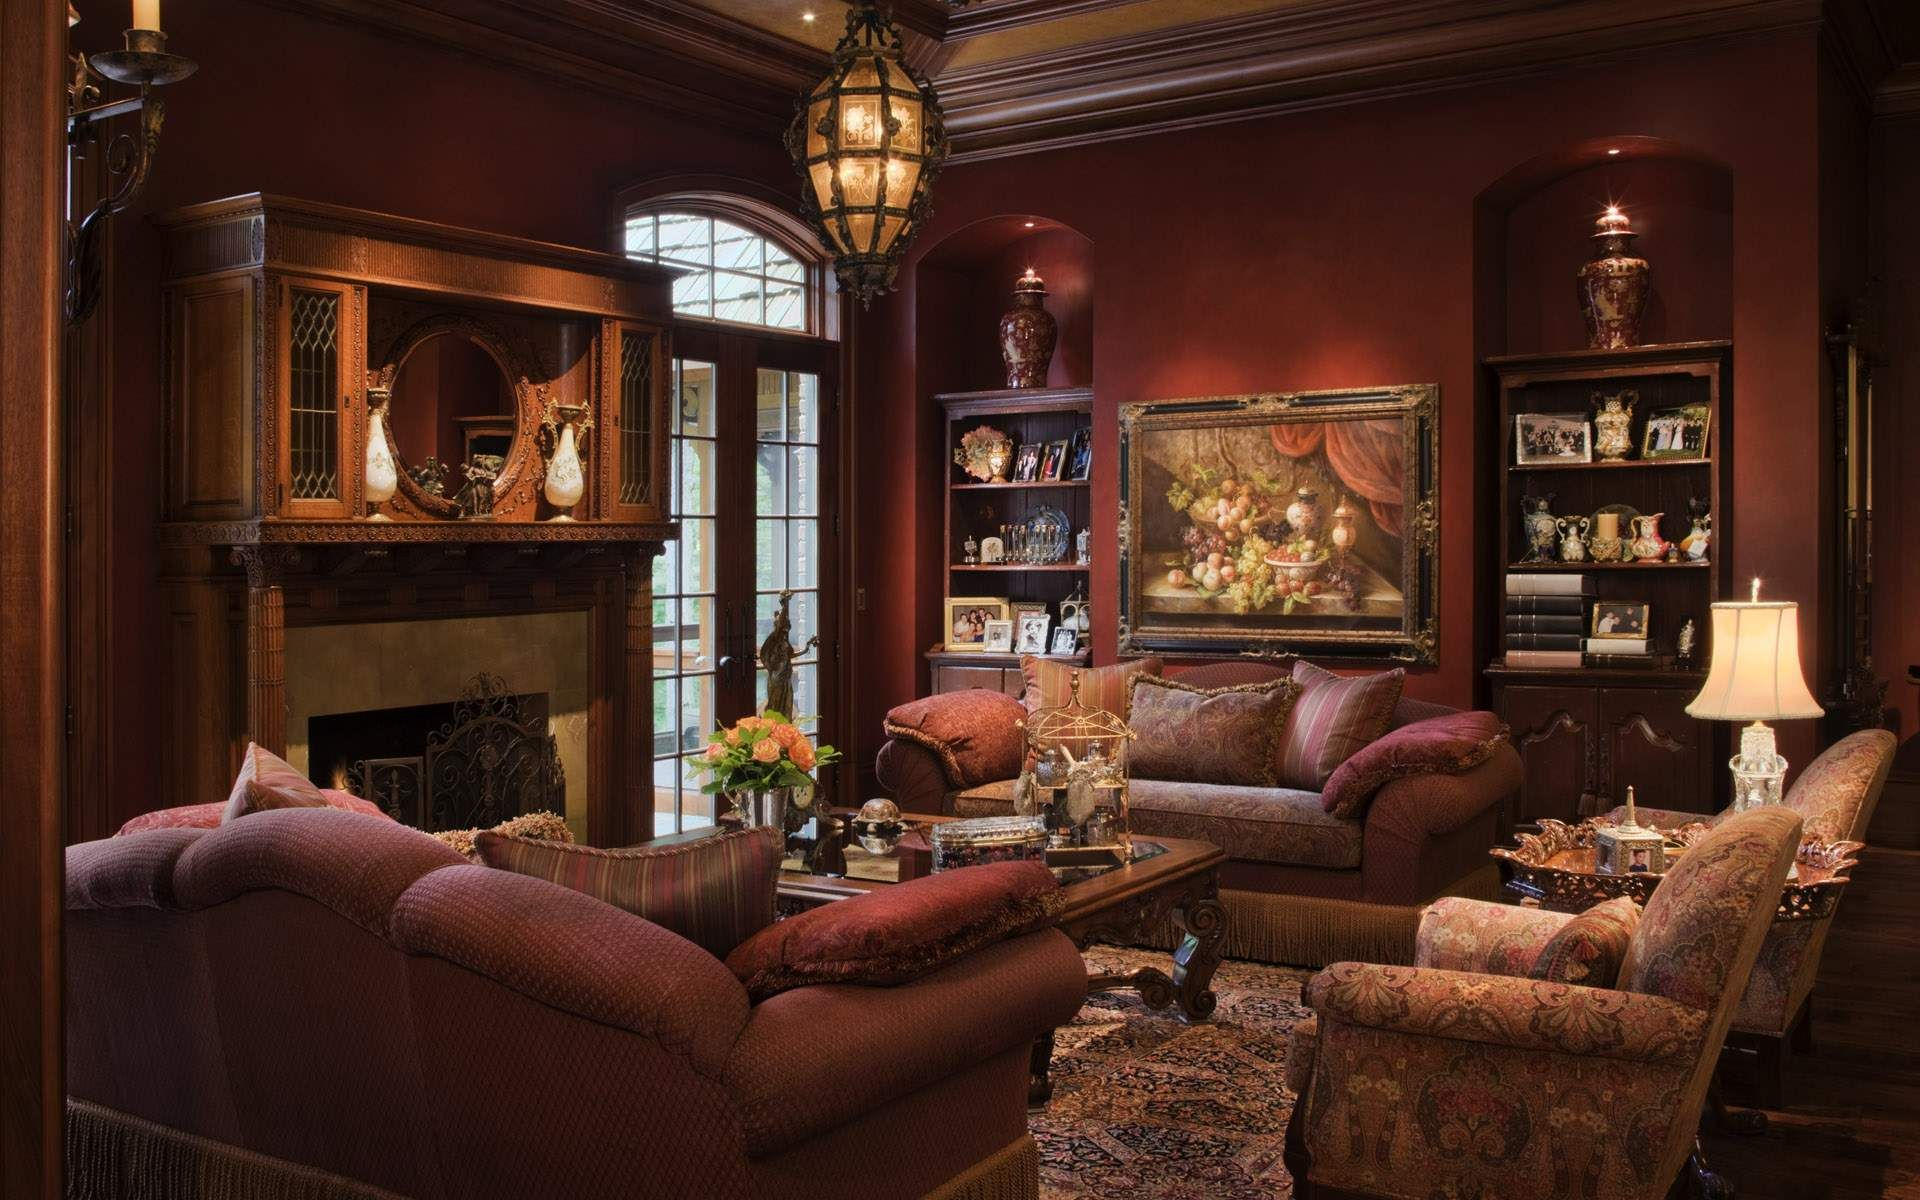 17 Best images about Living Rooms on Pinterest   Fireplaces  Brown  furniture and Furniture. 17 Best images about Living Rooms on Pinterest   Fireplaces  Brown